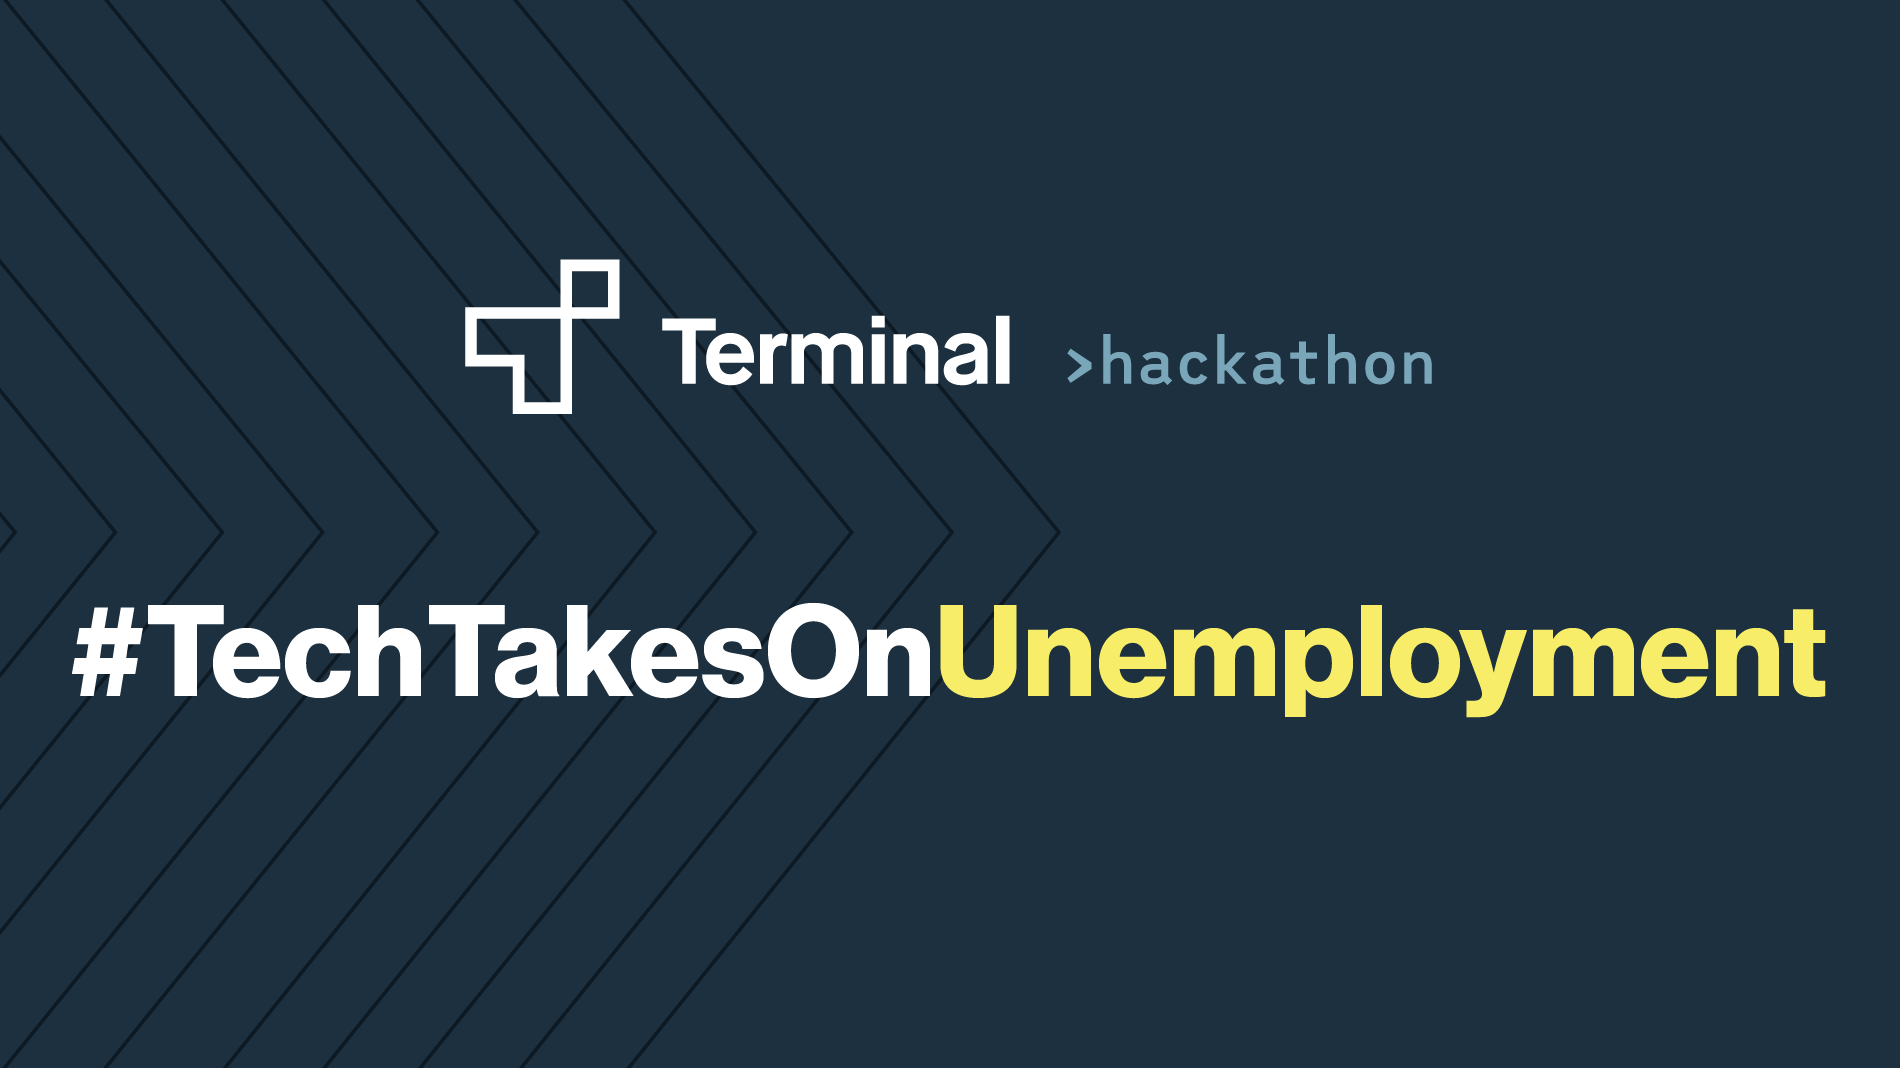 Tech Takes On Unemployment